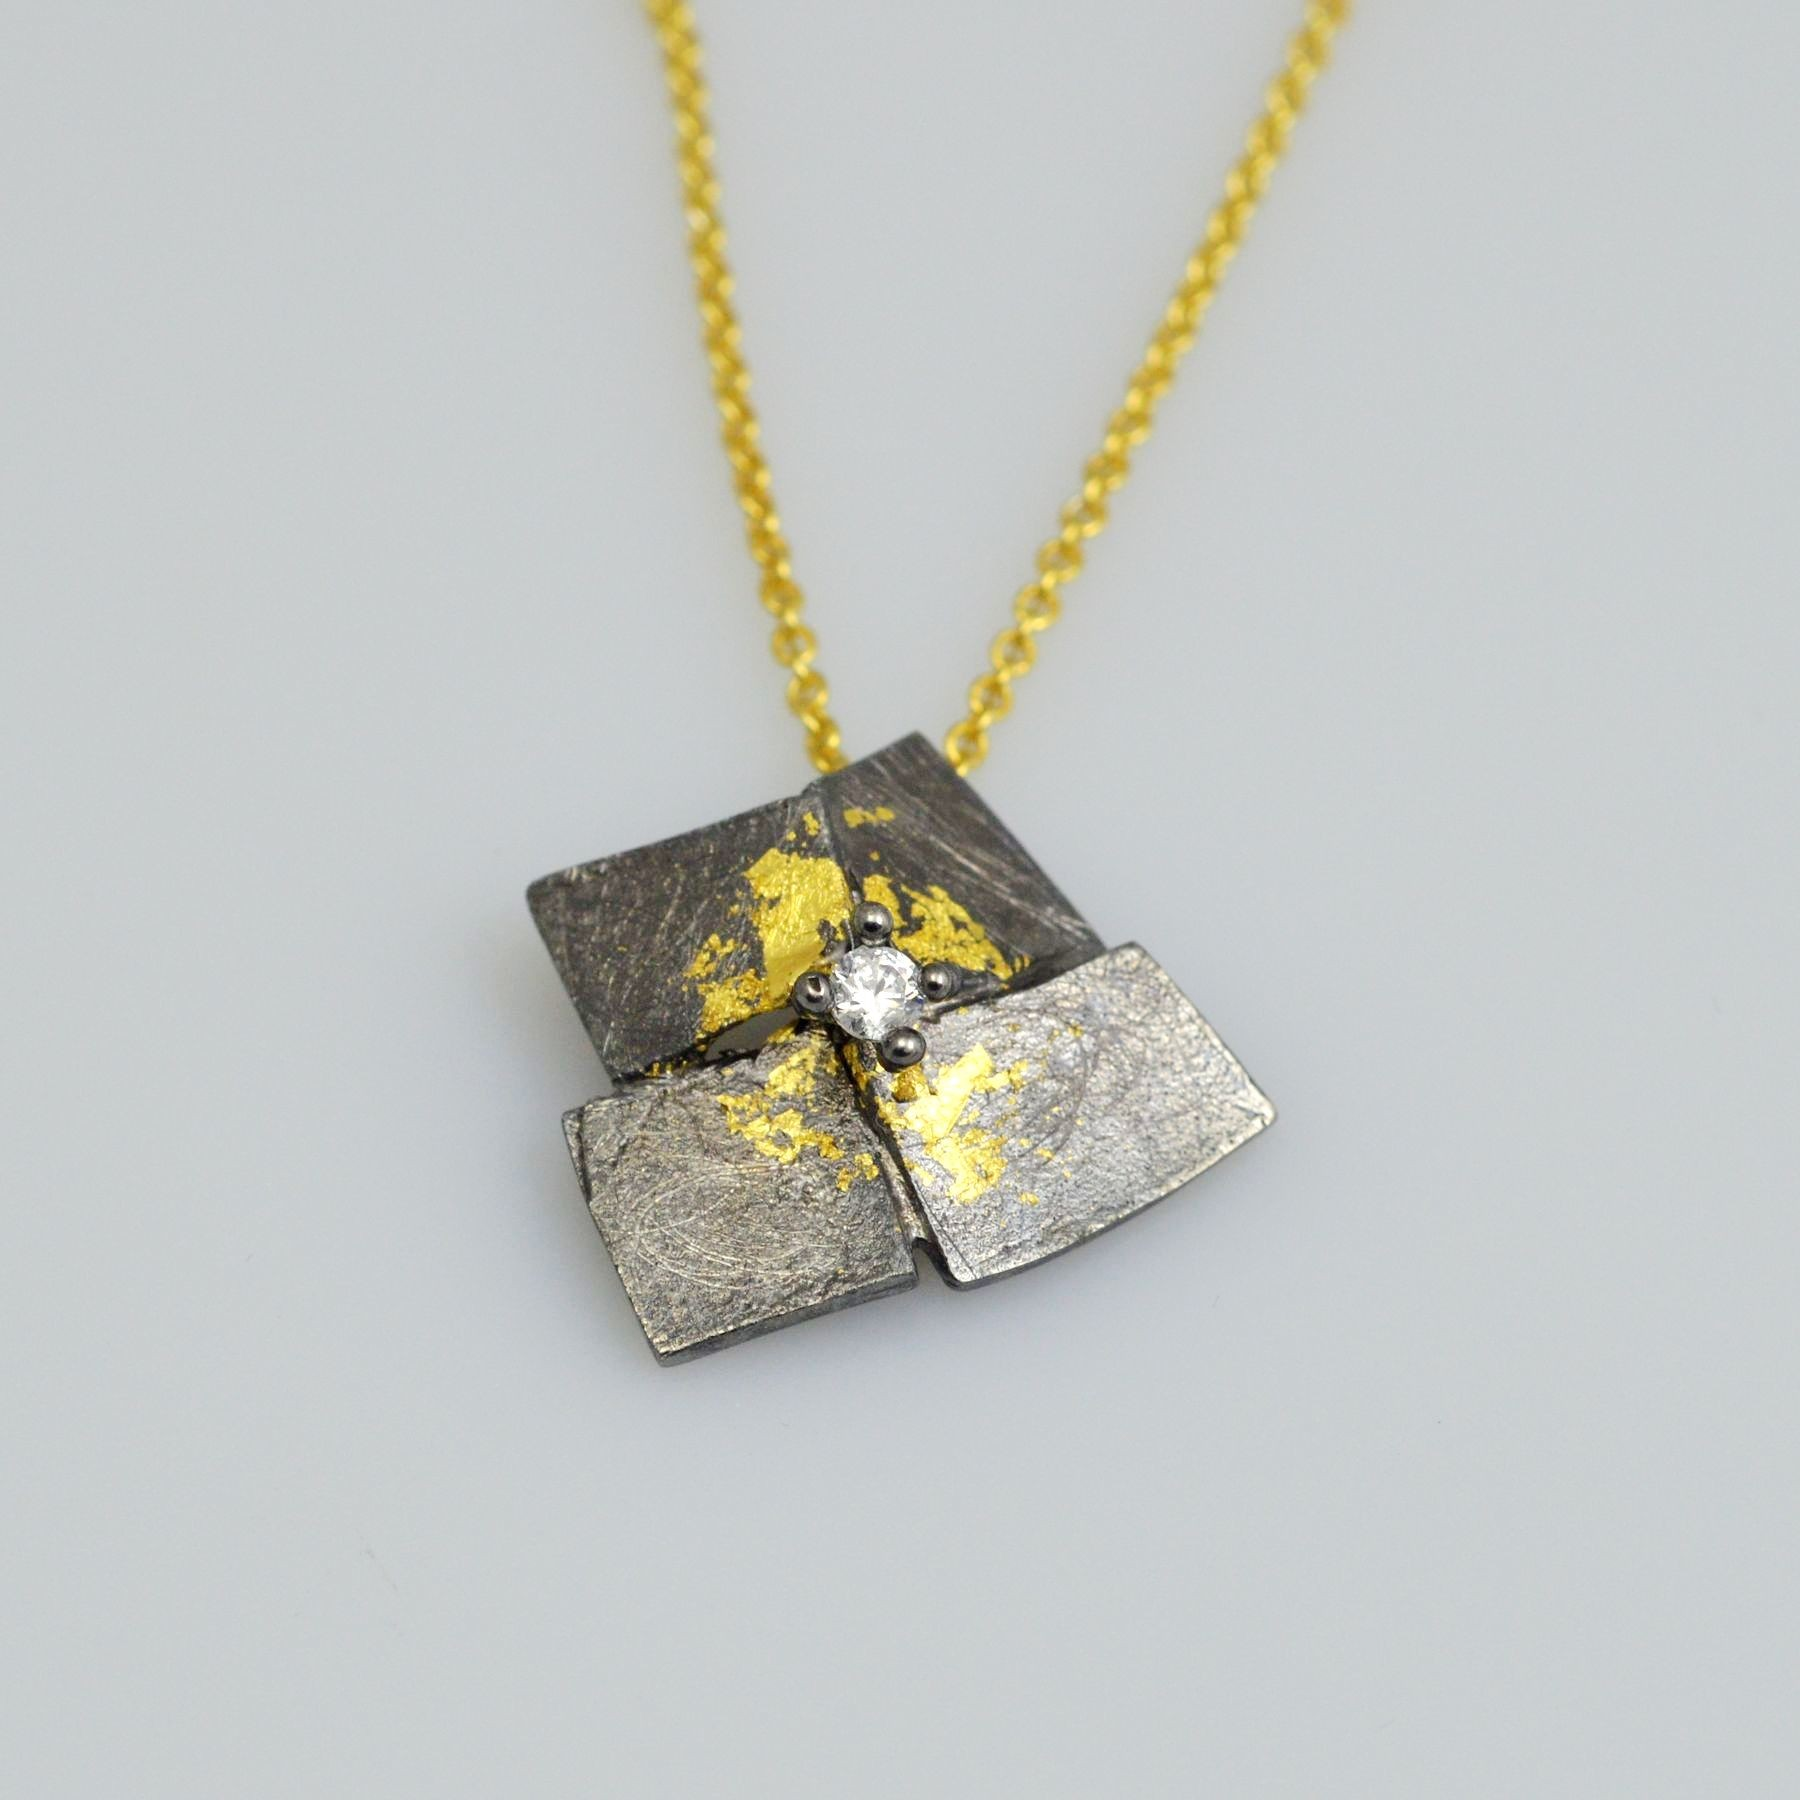 Silver pendant 925 black rhodium and gold plated with gold leaf 22K and synthetic stones